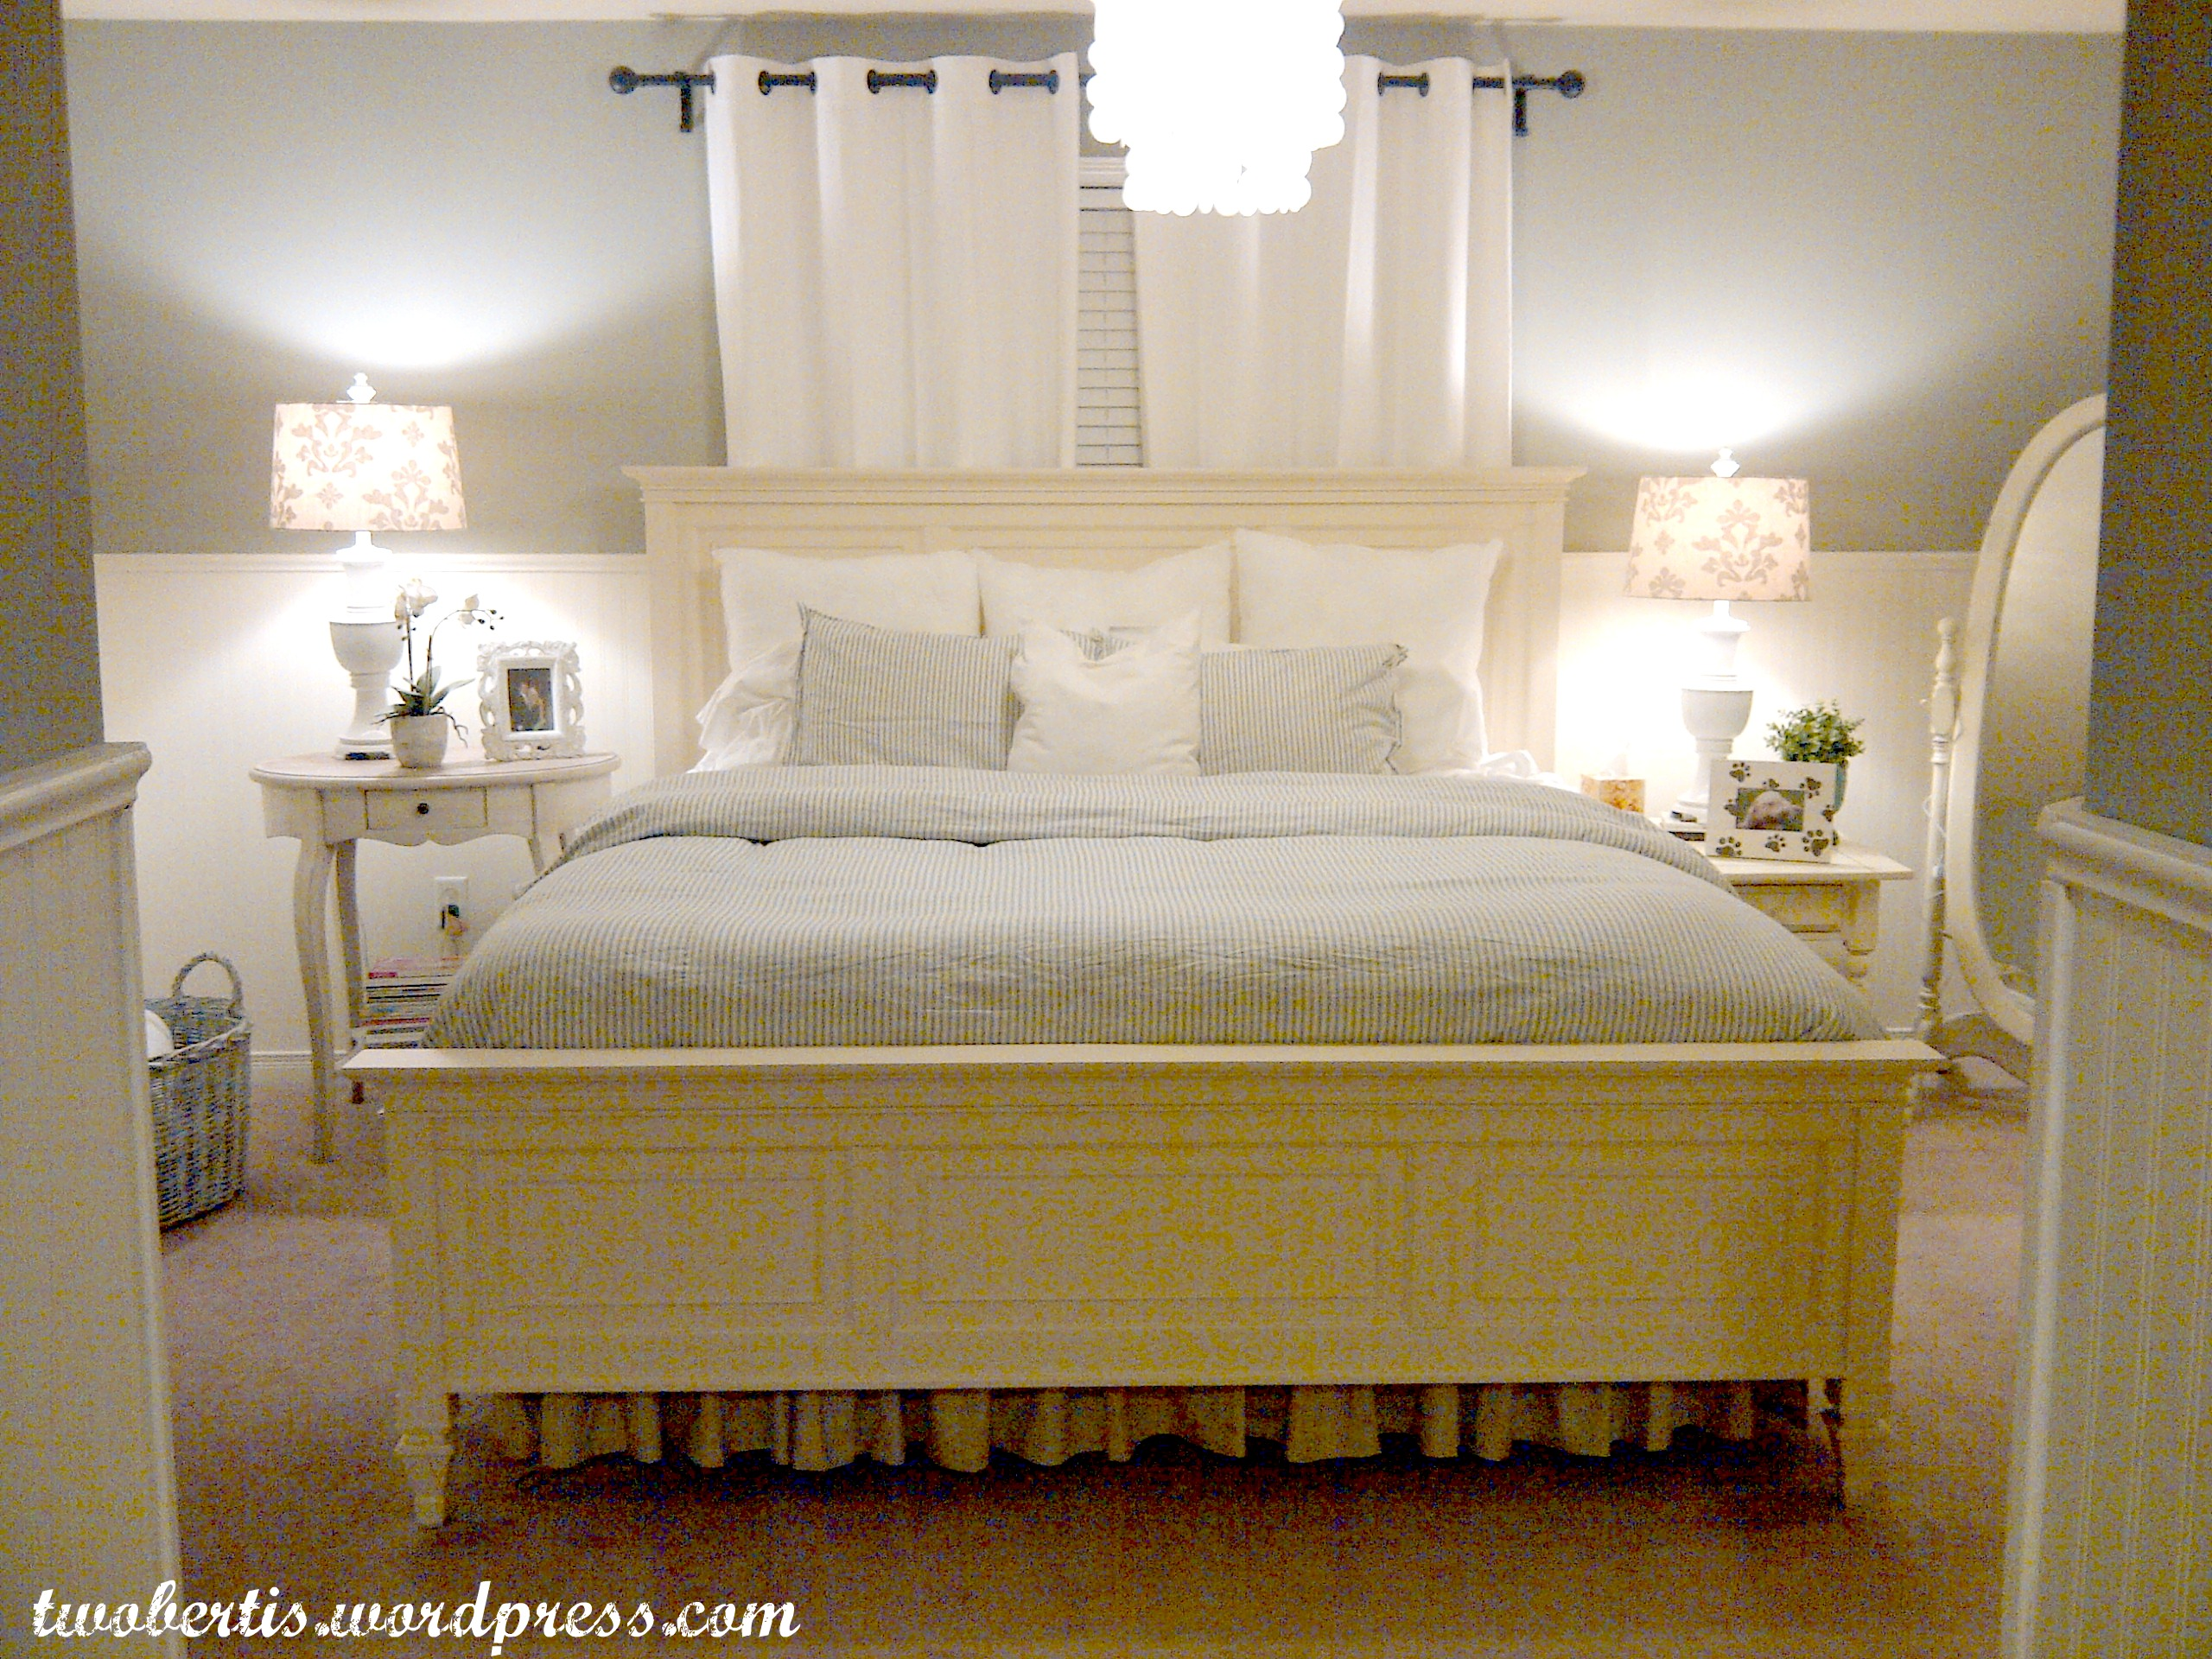 Remodelaholic | Pottery Barn Inspired Master Bedroom Makeover